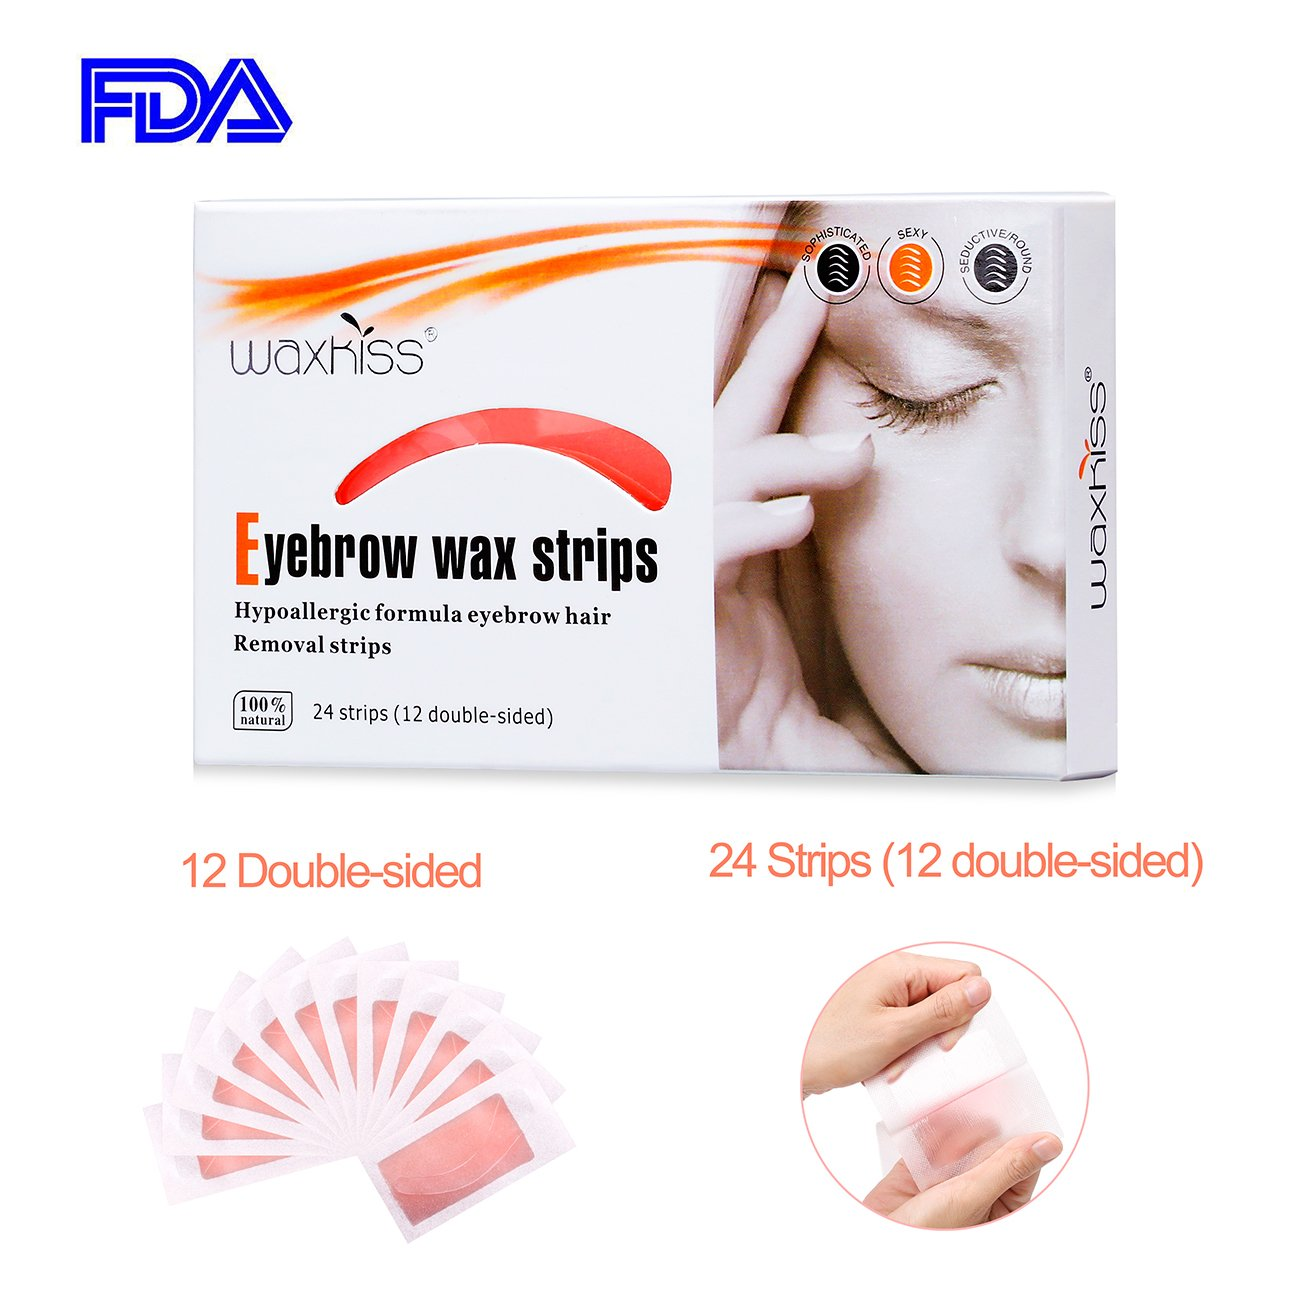 Waxkiss Eyebrows Waxing Strips Cold Wax Strip with FDA for Eyebrow Hair Removal Bikini Hair Removal Home and Traveling Wax Strips Ready to Use 24 Strips (12 double - side)